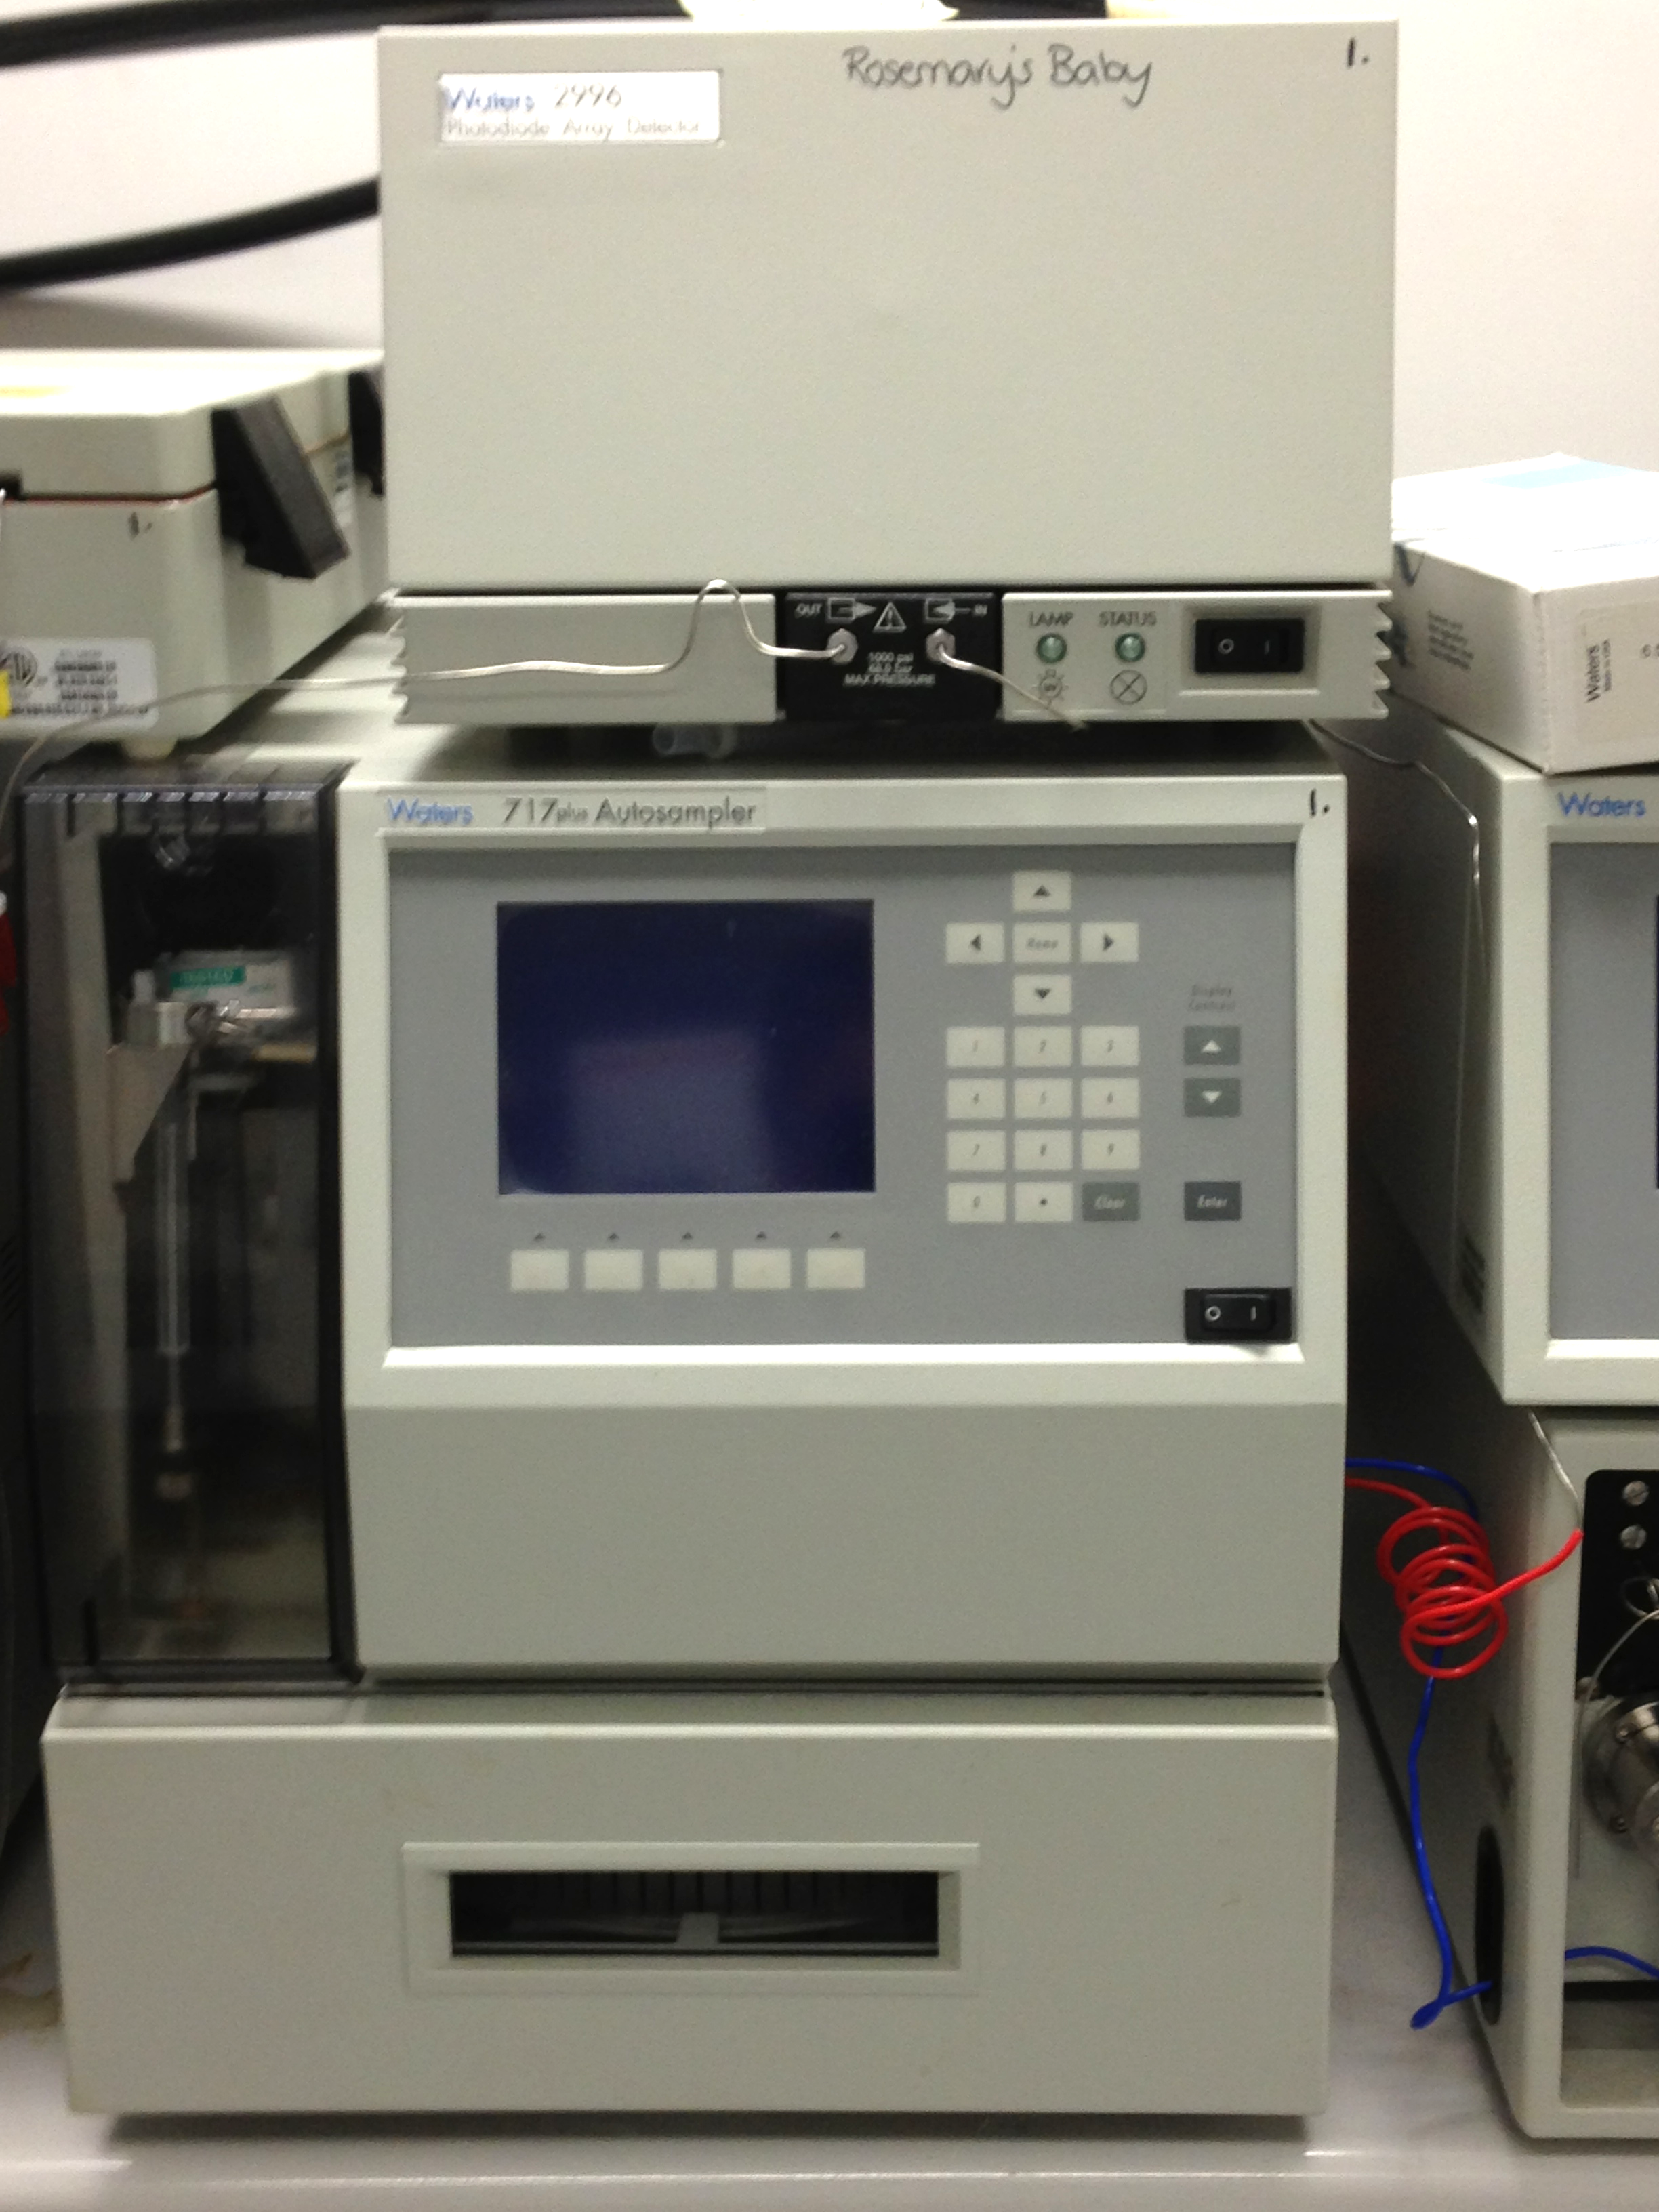 This machine performs high performance liquid chromatography. I took this photo during my visit to Monash University in 2013. Sales of the Monash University iphone/droid app support their research program.